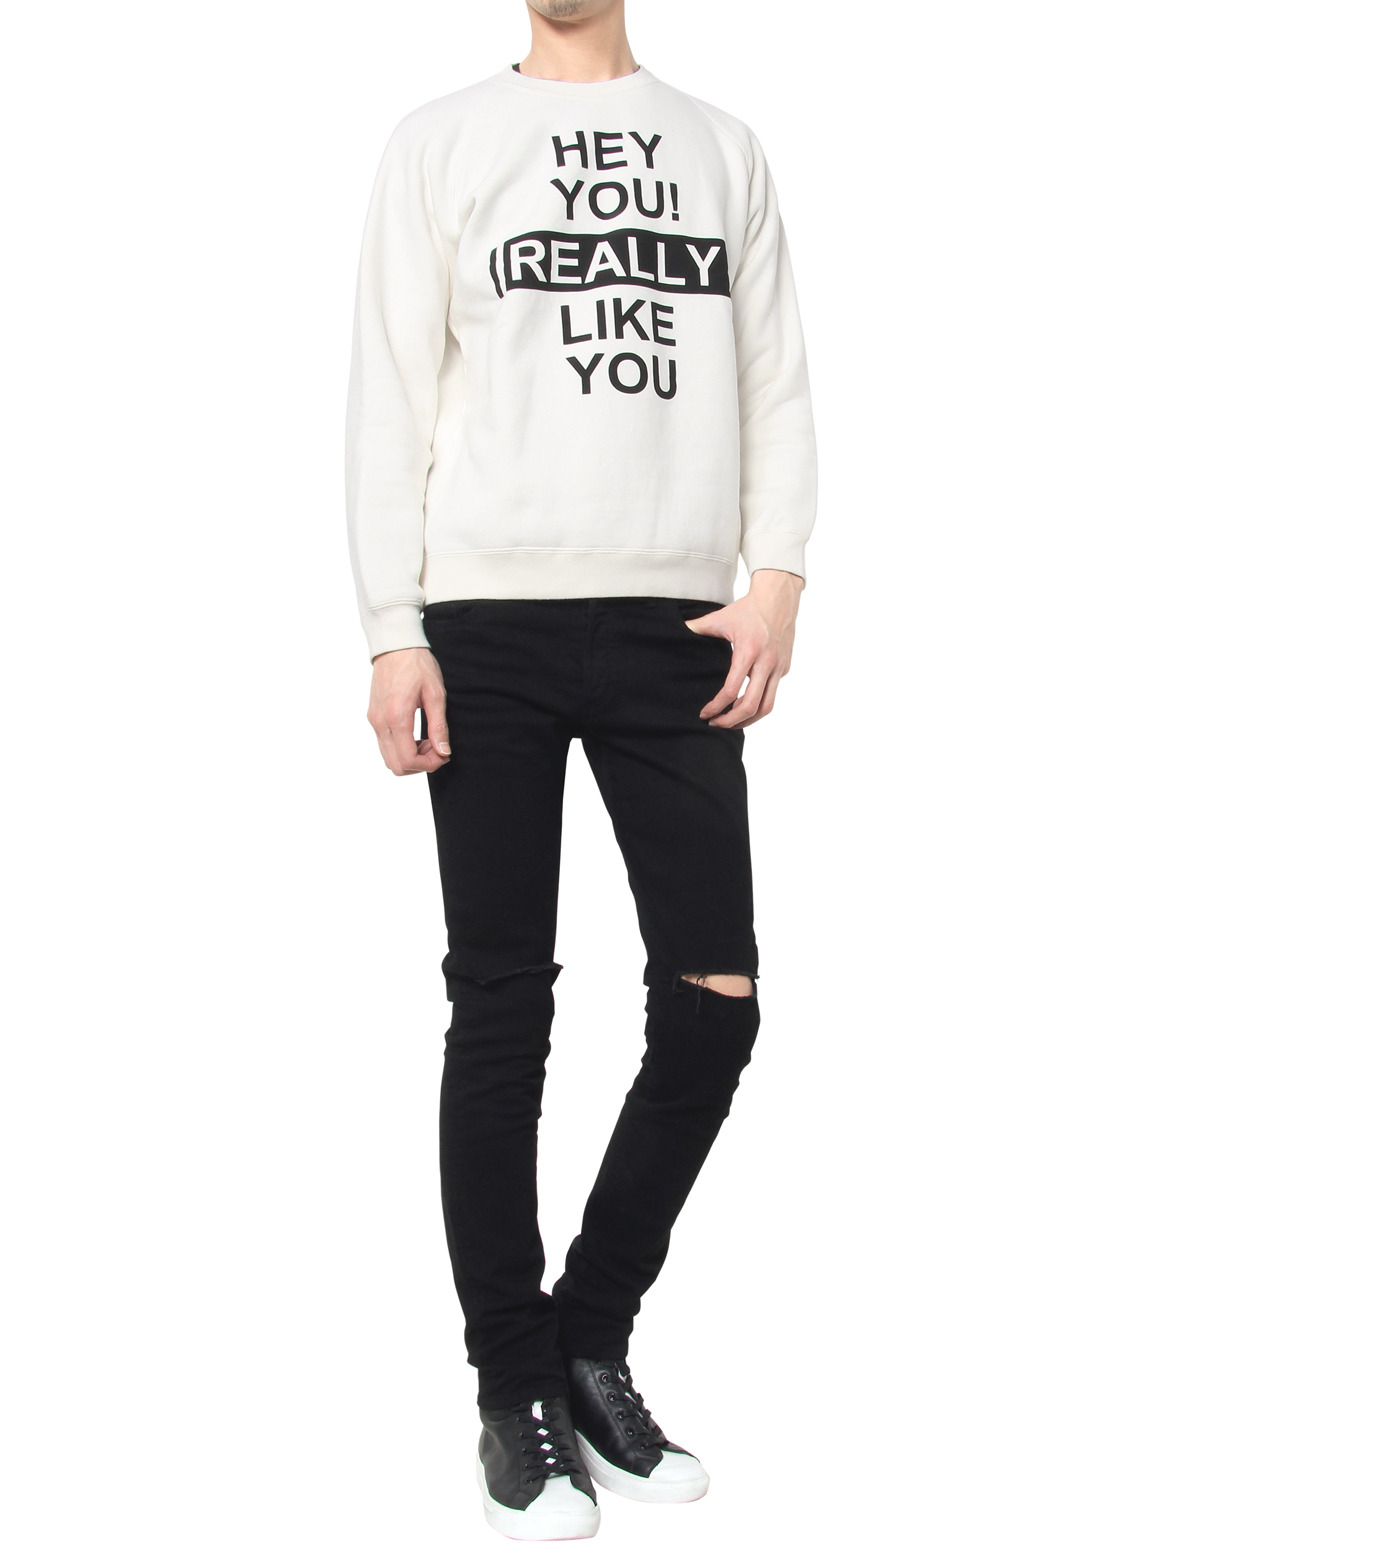 HEY YOU !(ヘイユウ)のHEY YOU LIKE YOU-WHITE(カットソー/cut and sewn)-18S92003-4 拡大詳細画像4